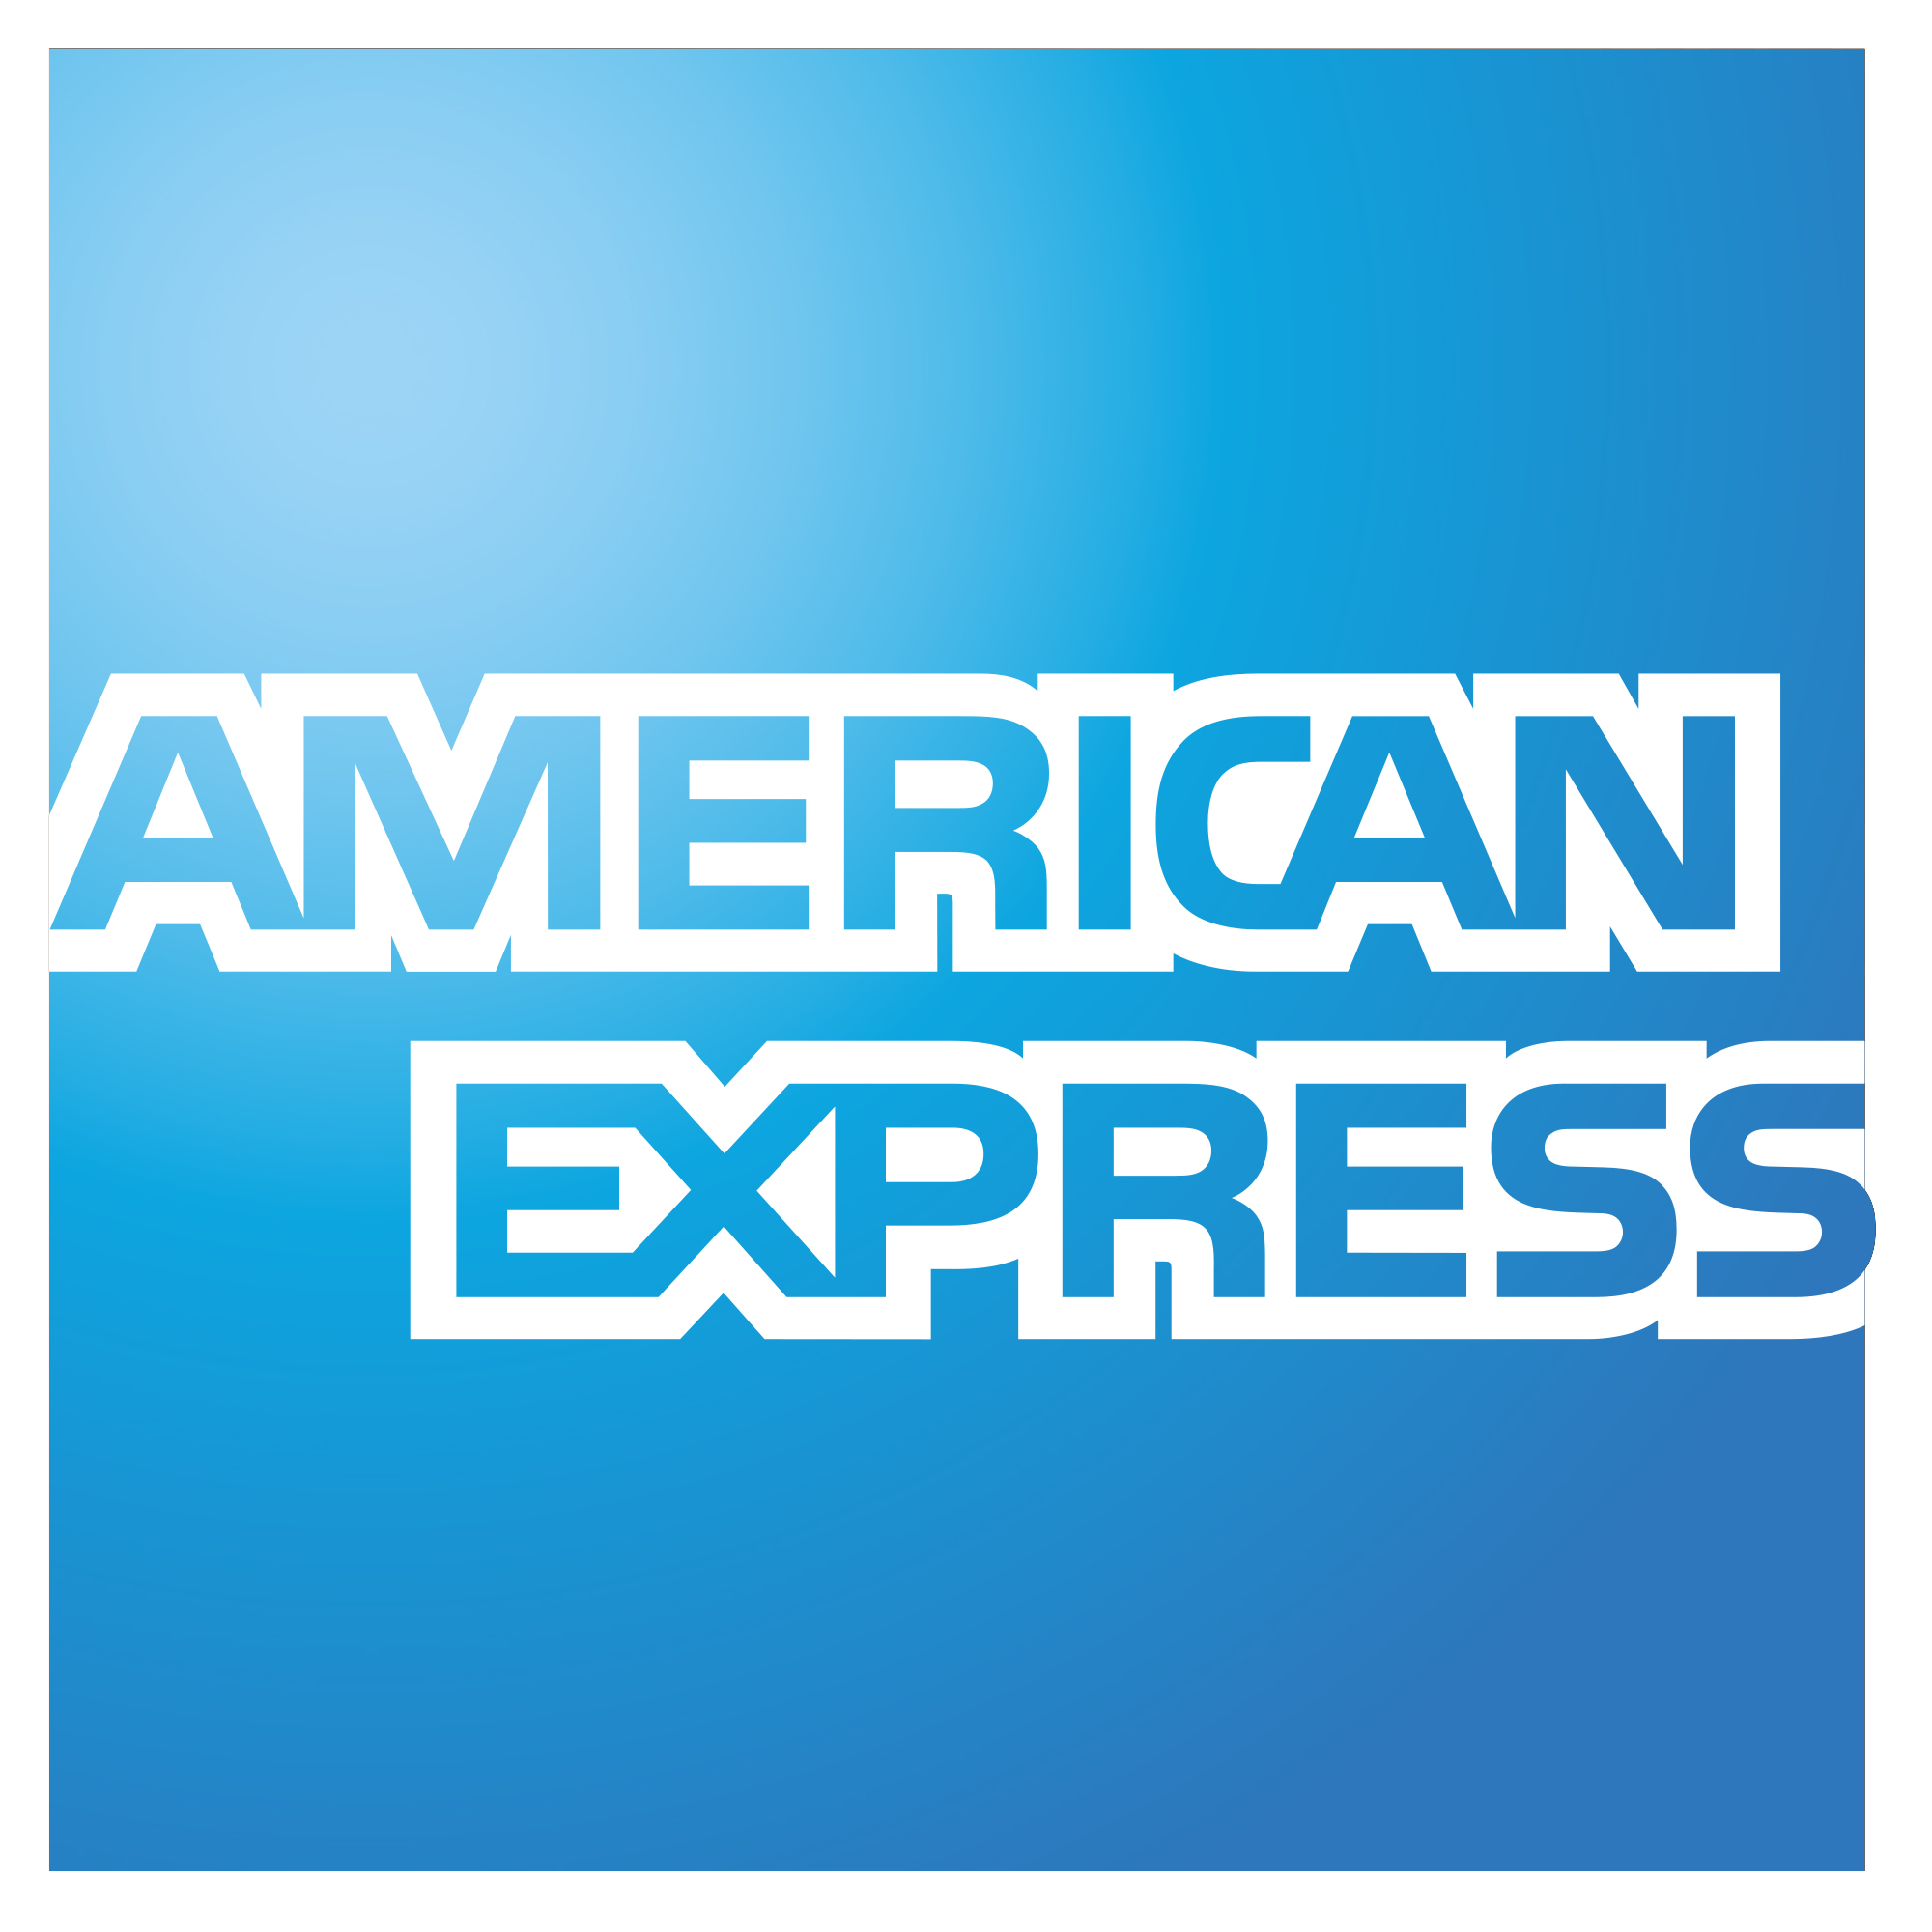 We accept American Express